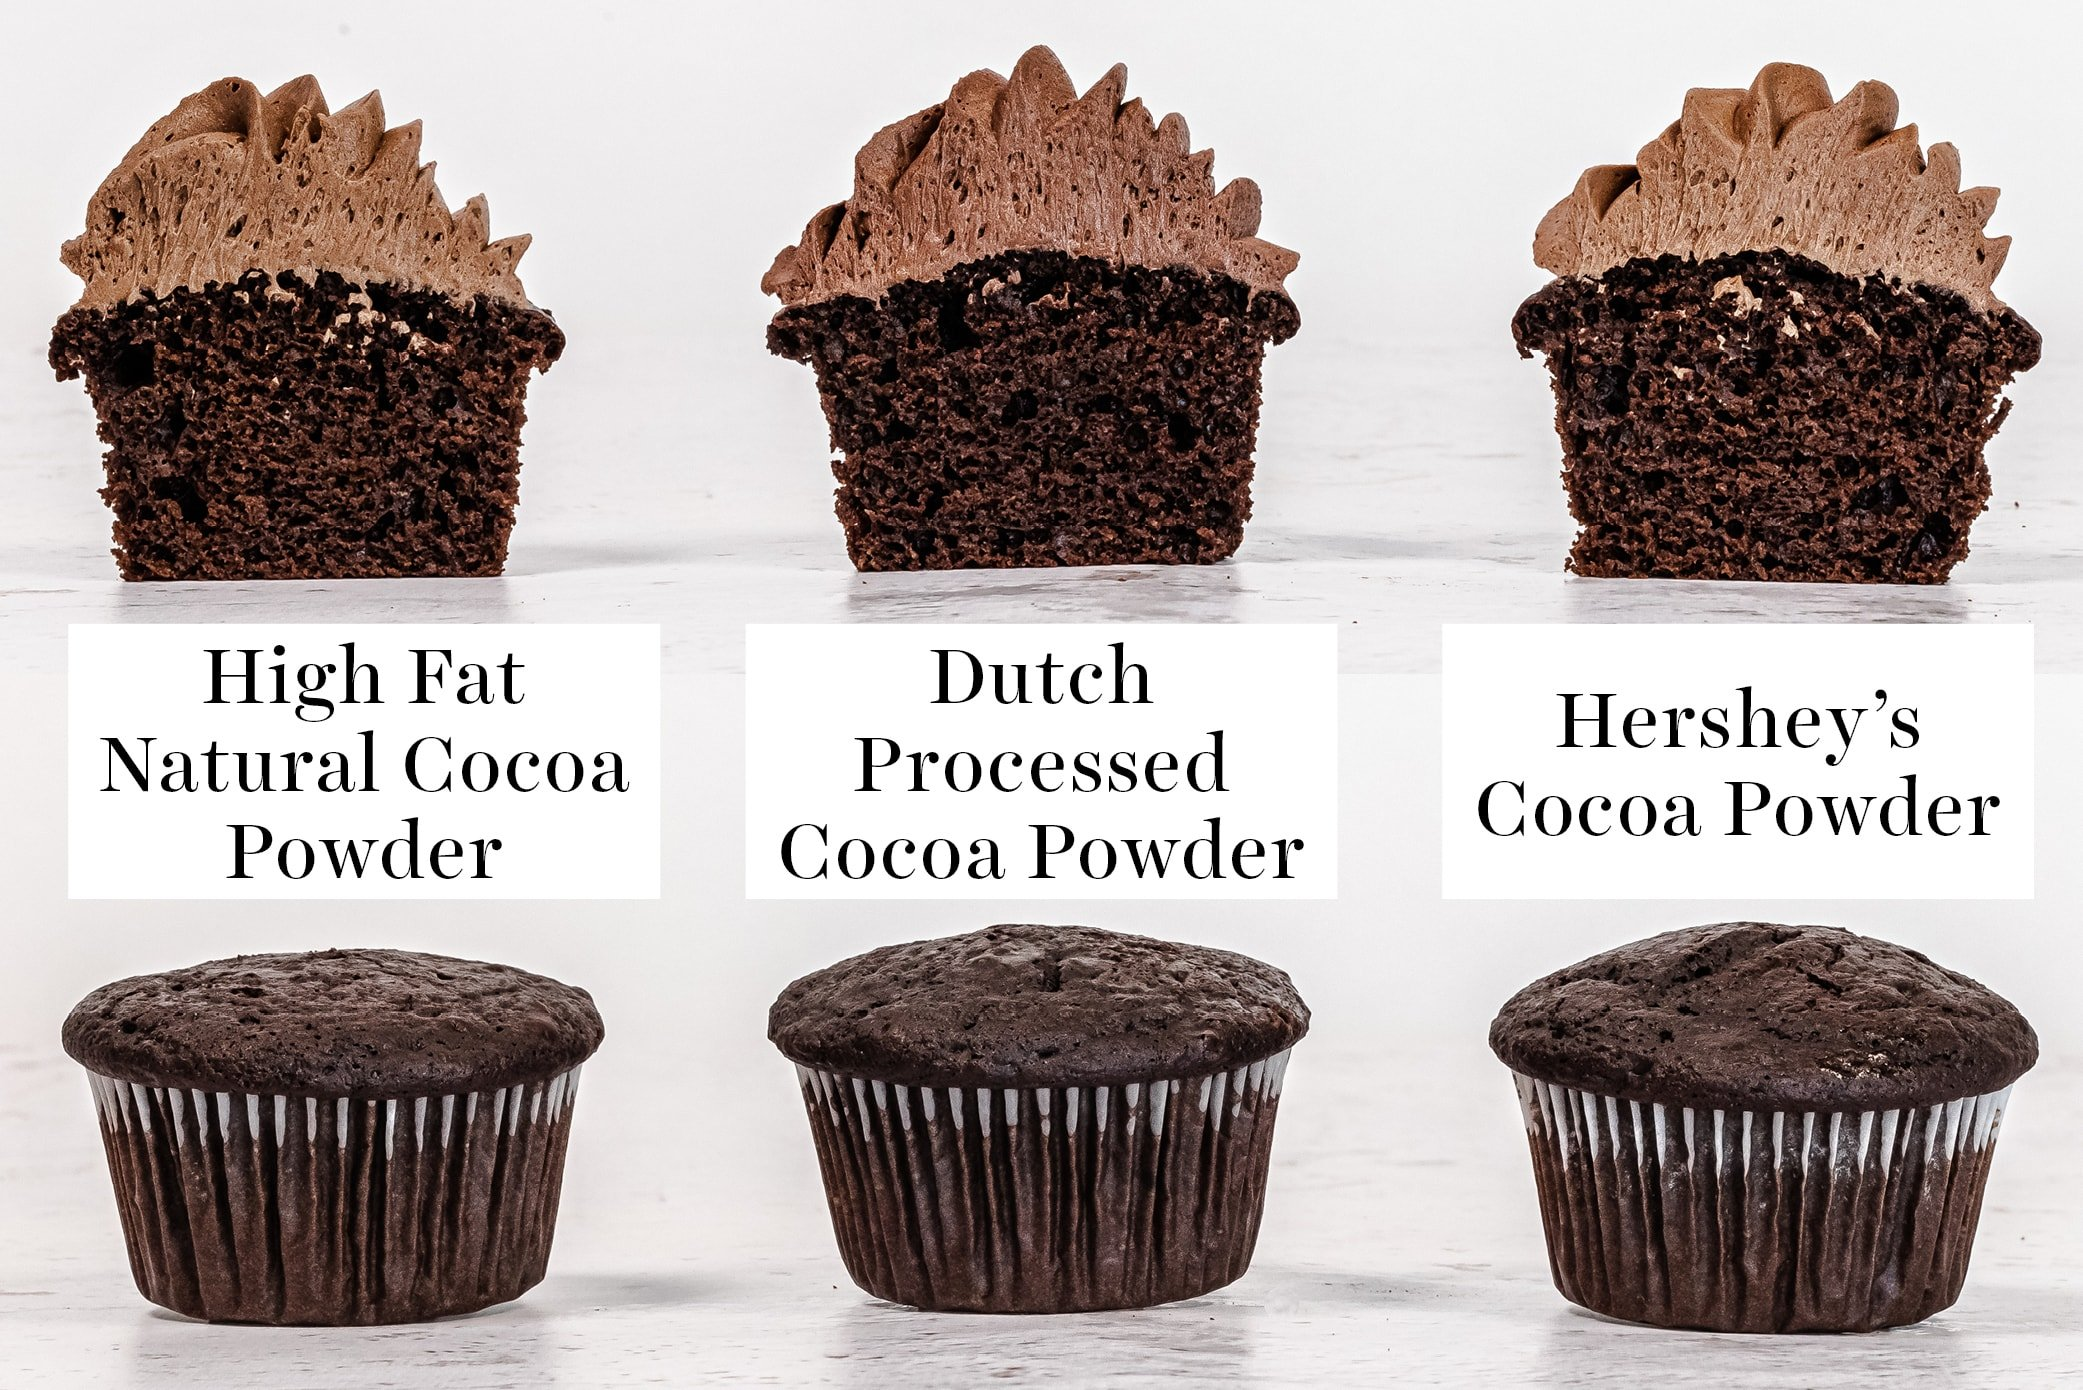 cupcake comparison of cupcakes baked with different types of cocoa powder